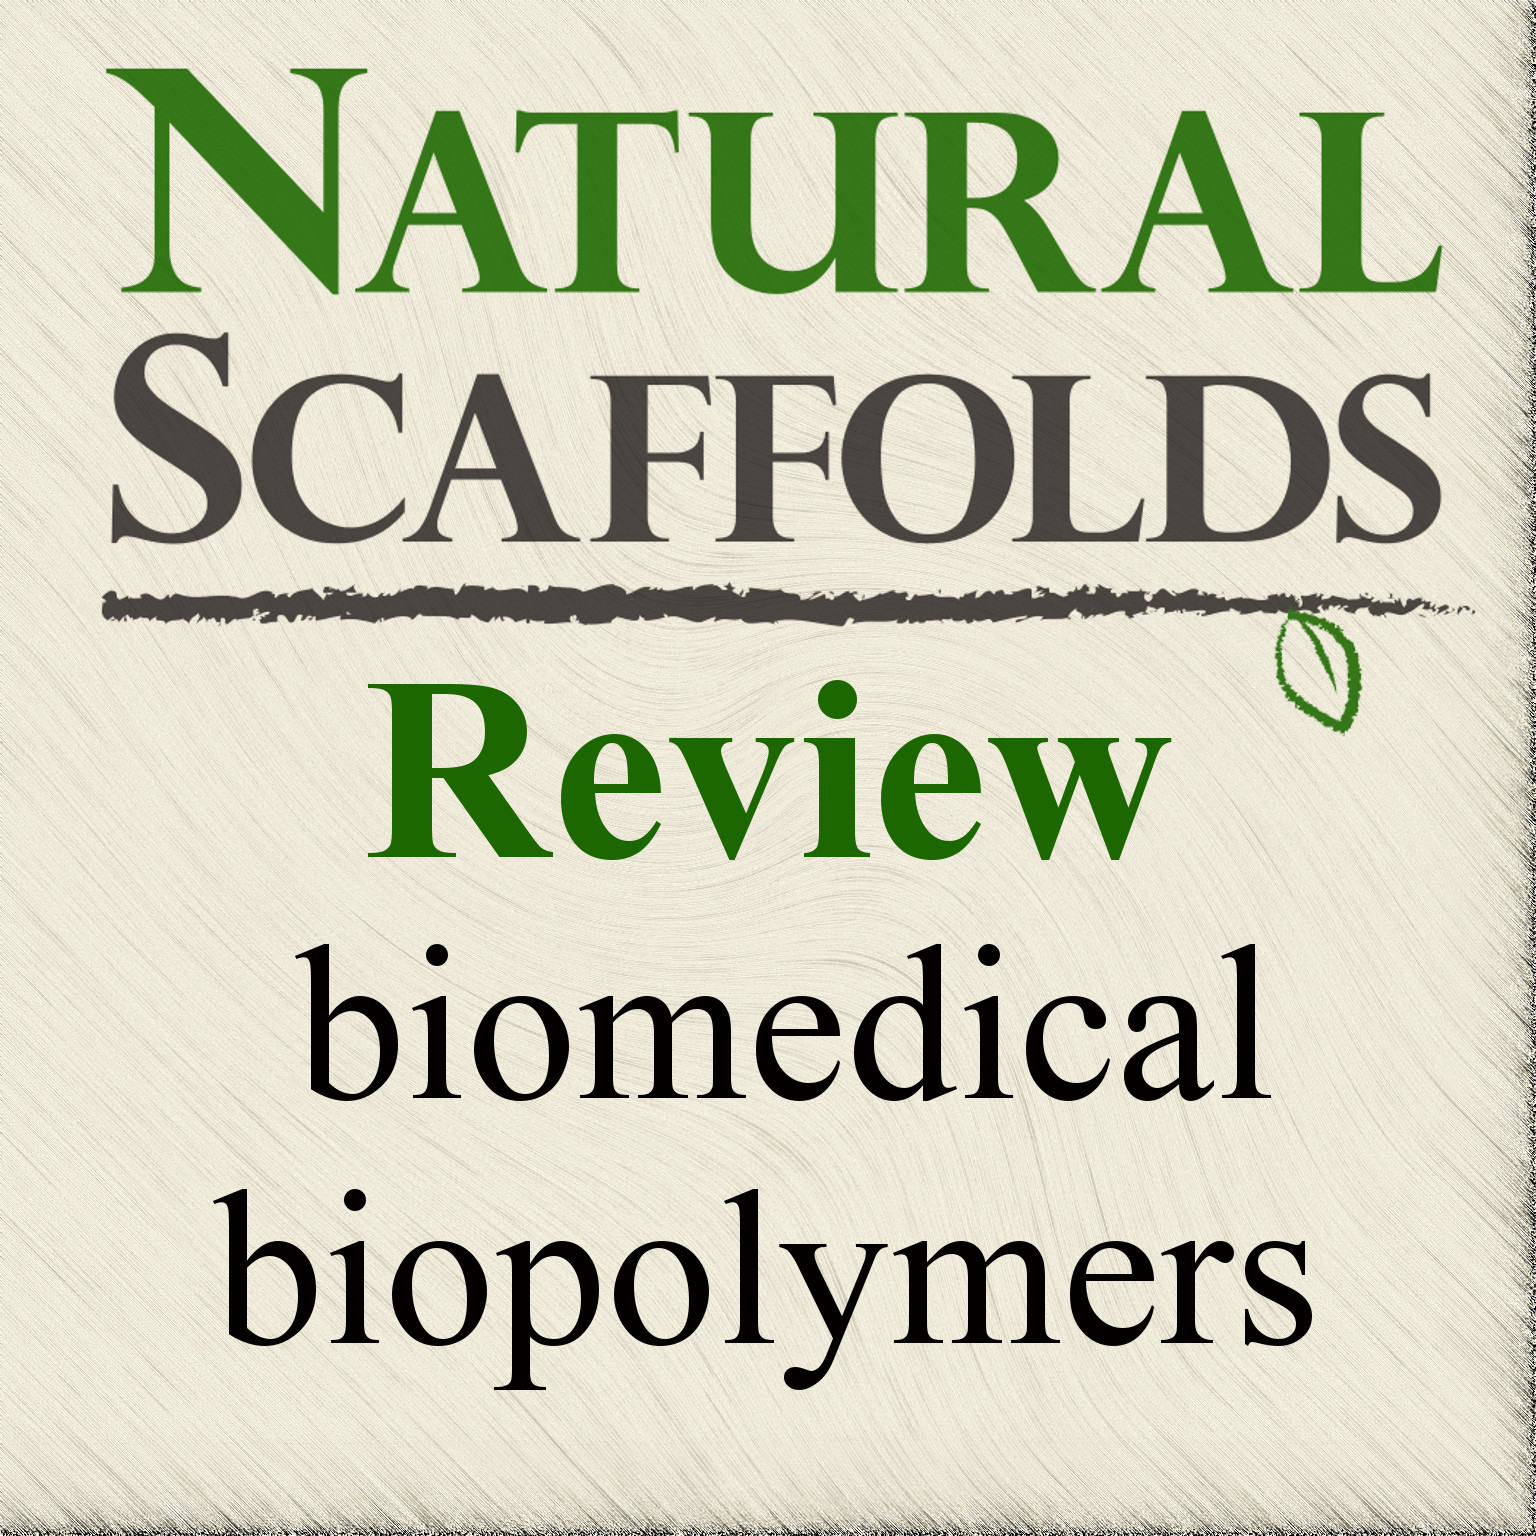 Natural Scaffolds Review